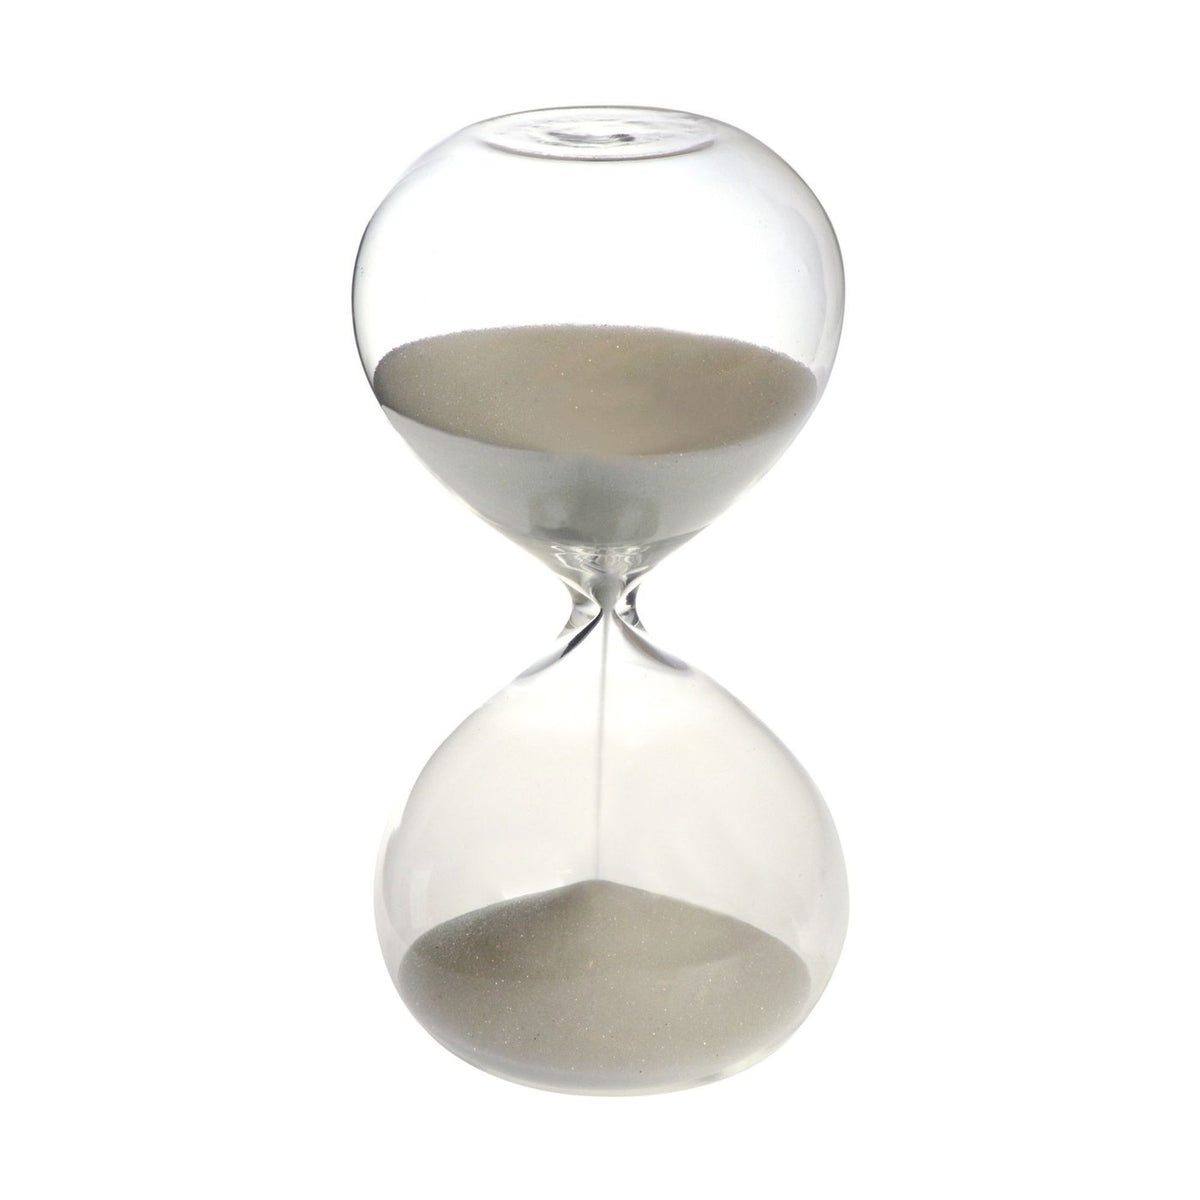 Nicola Spring Hourglass Kitchen Sand Timer - 15 minutes